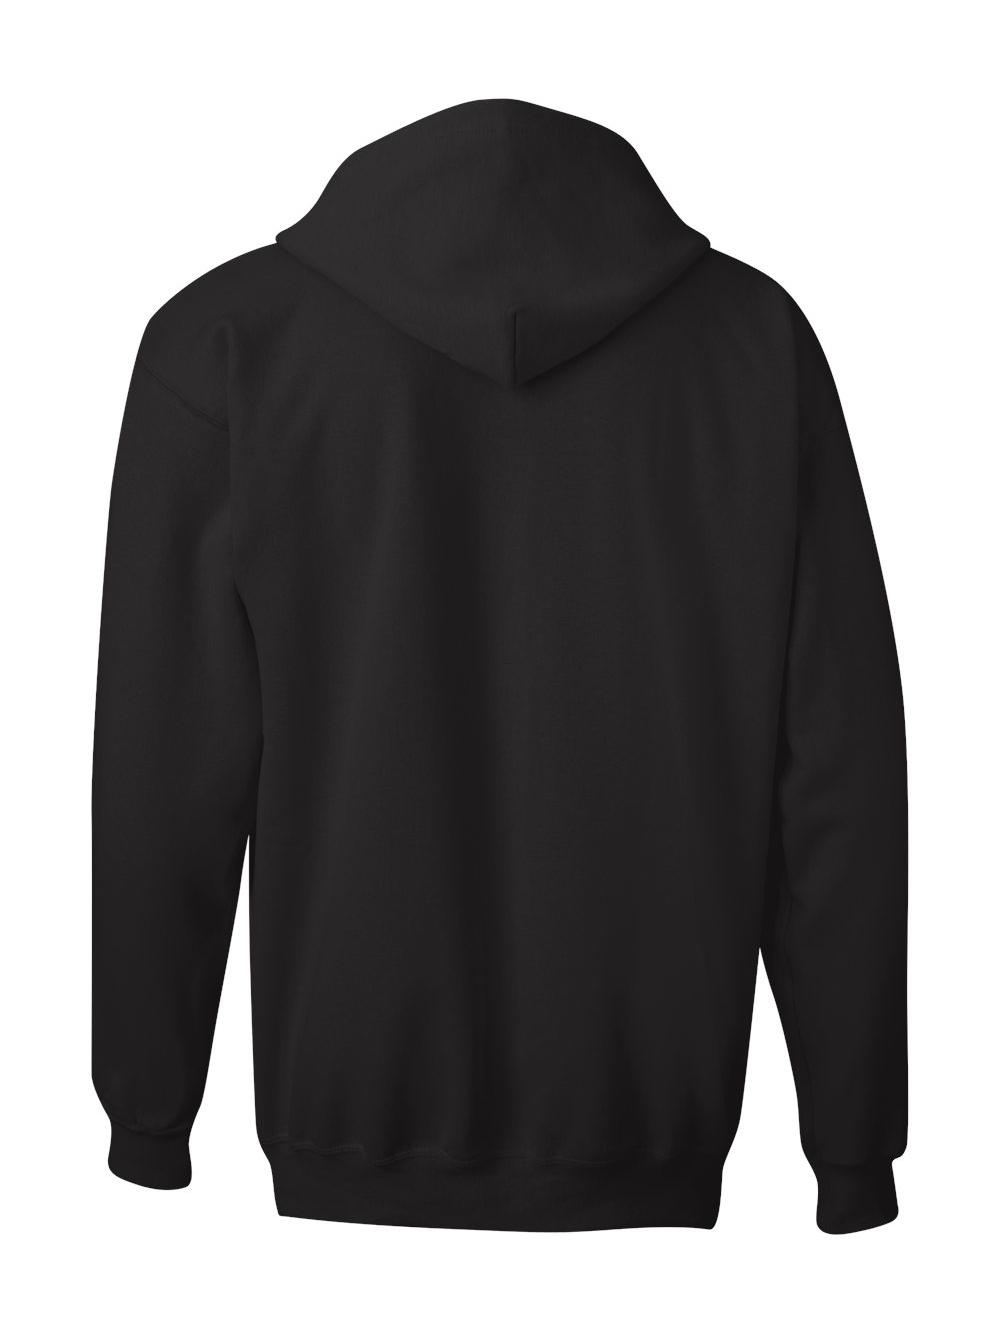 Hanes-Ultimate-Cotton-Full-Zip-Hooded-Sweatshirt-F280 thumbnail 4